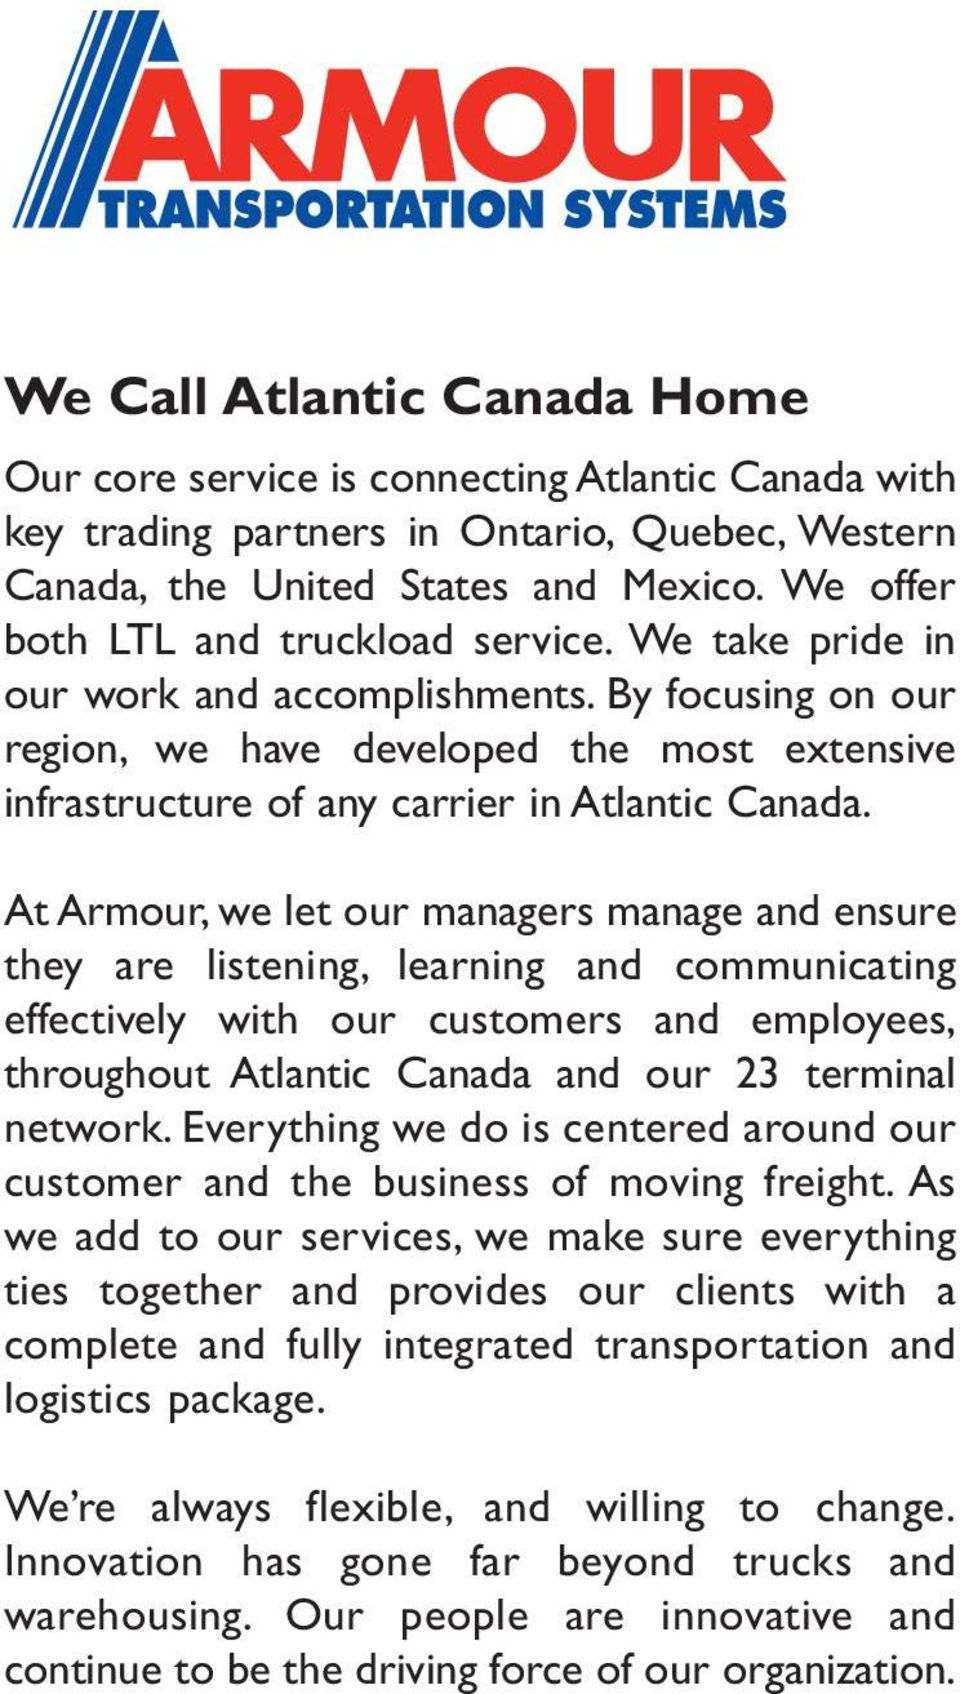 By focusing on our region, we have developed the most extensive infrastructure of any carrier in Atlantic Canada.